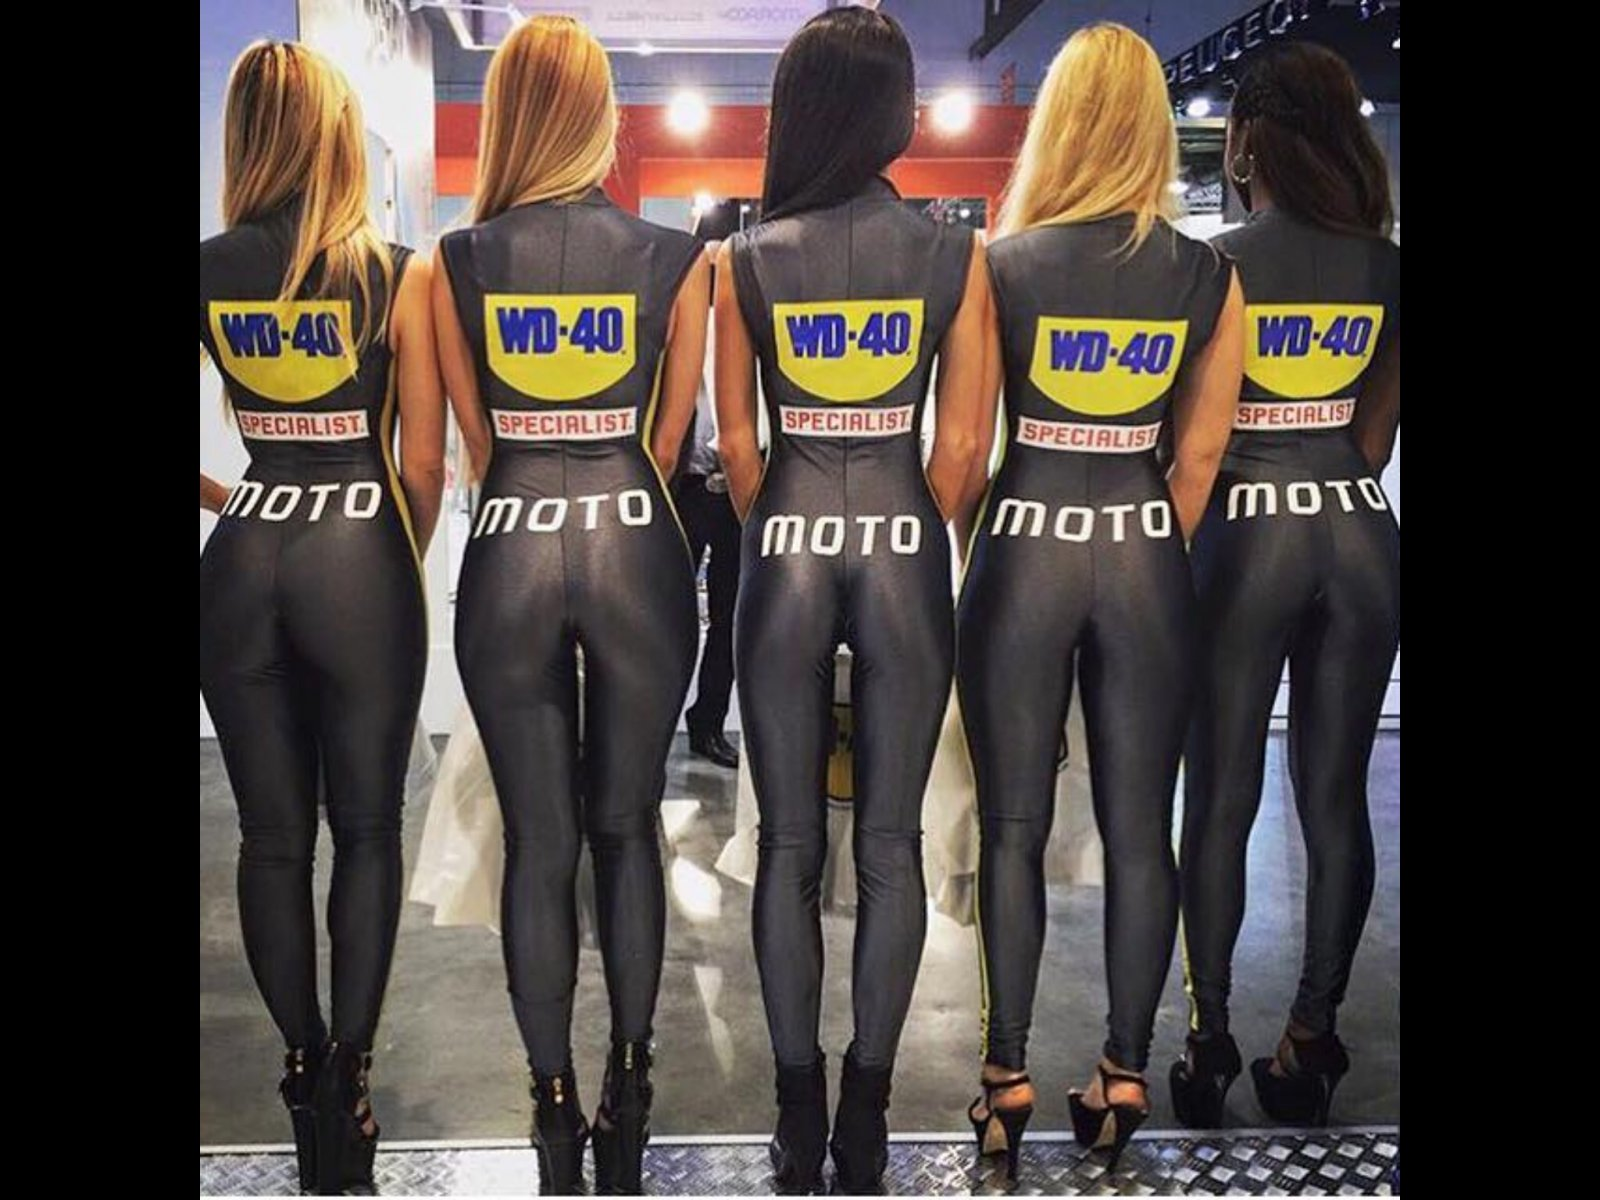 Girls Profile Wallpaper Love Wd40 Bmw Z1 Z4 Z8 Z3 Forum And Technical Database